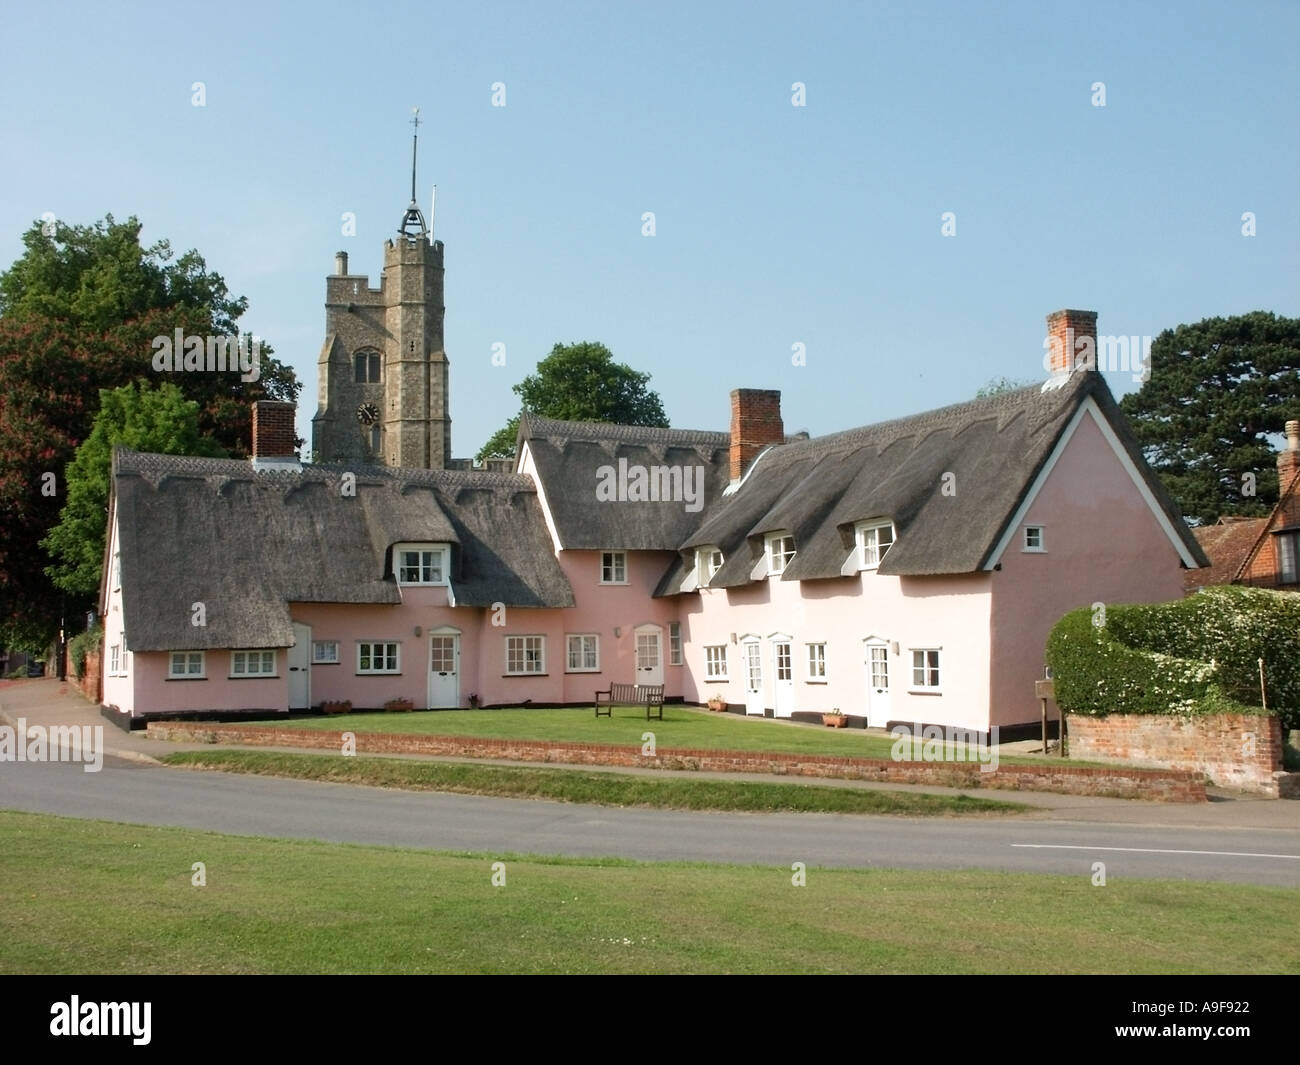 Cavendish near Sudbury thatched roofs on Alms Houses beside village green church tower beyond Suffolk East Anglia England UK - Stock Image